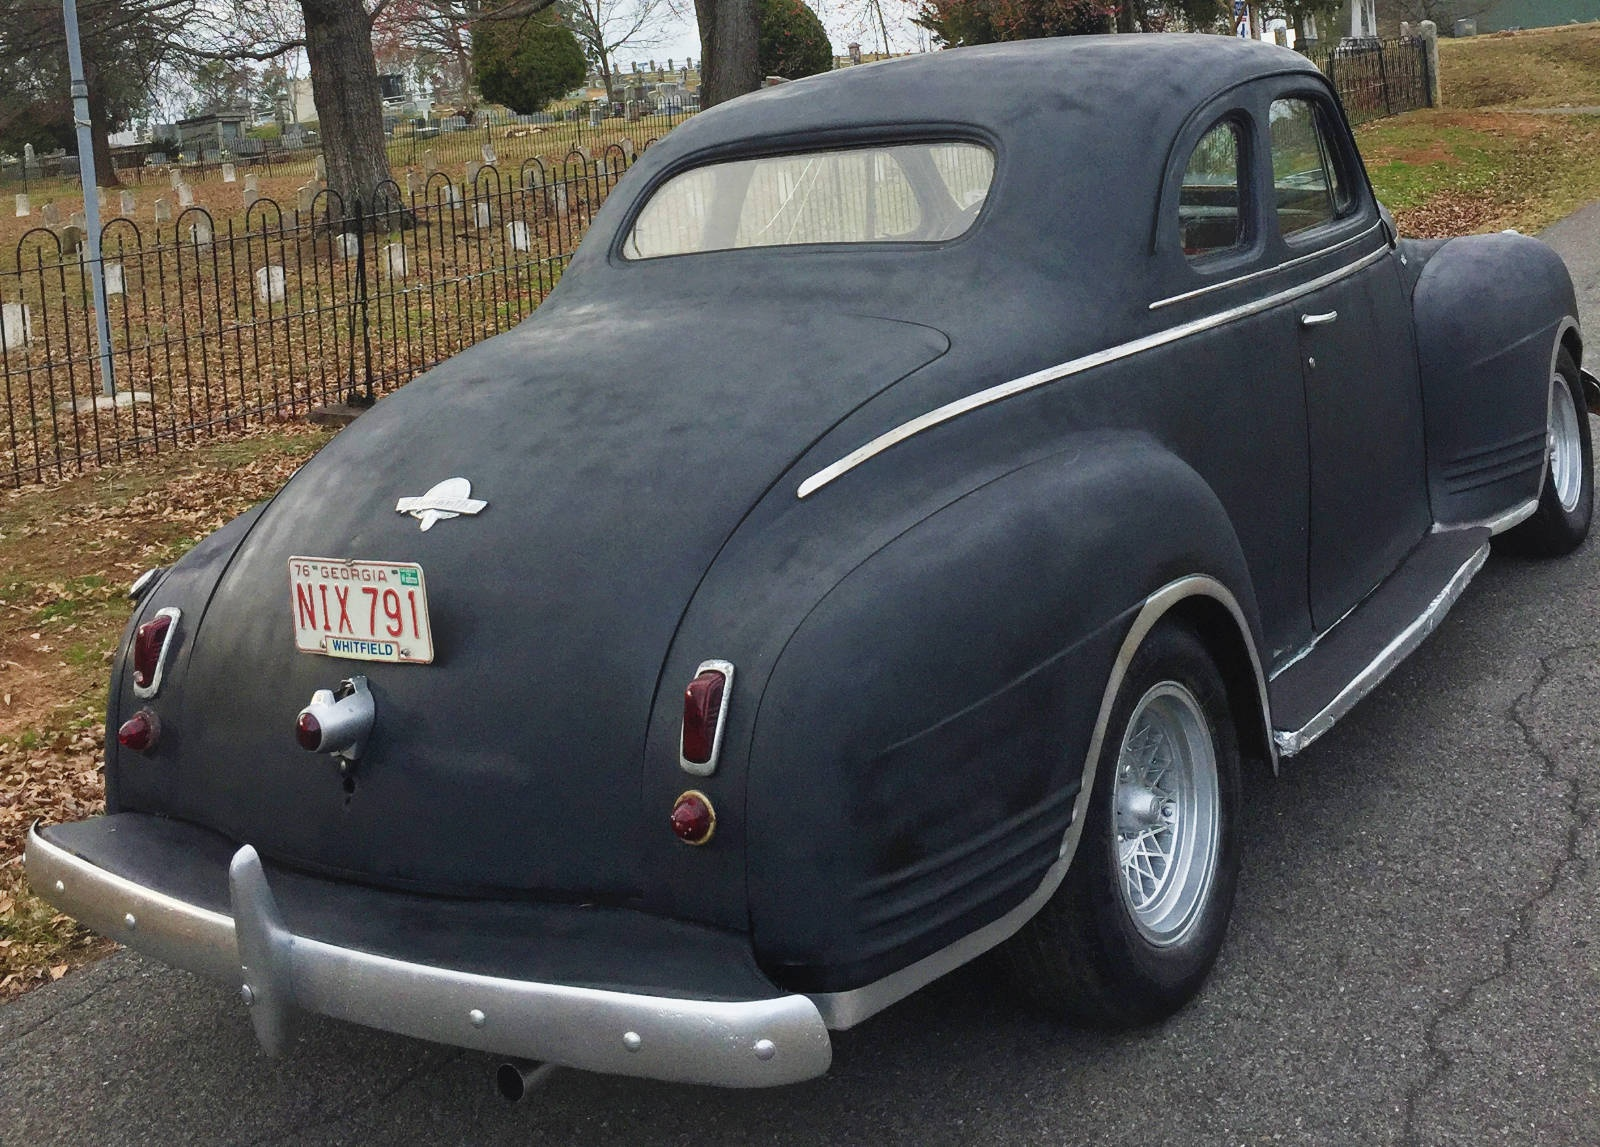 Exclusive 1941 Plymouth Deluxe Business Coupe 1k Price Drop Special Parts Our Thanks To Ron For Listing His Hopefully He Finds A Good Home It And With Any Luck The Next Owner Will Keep Us Posted Their Progress